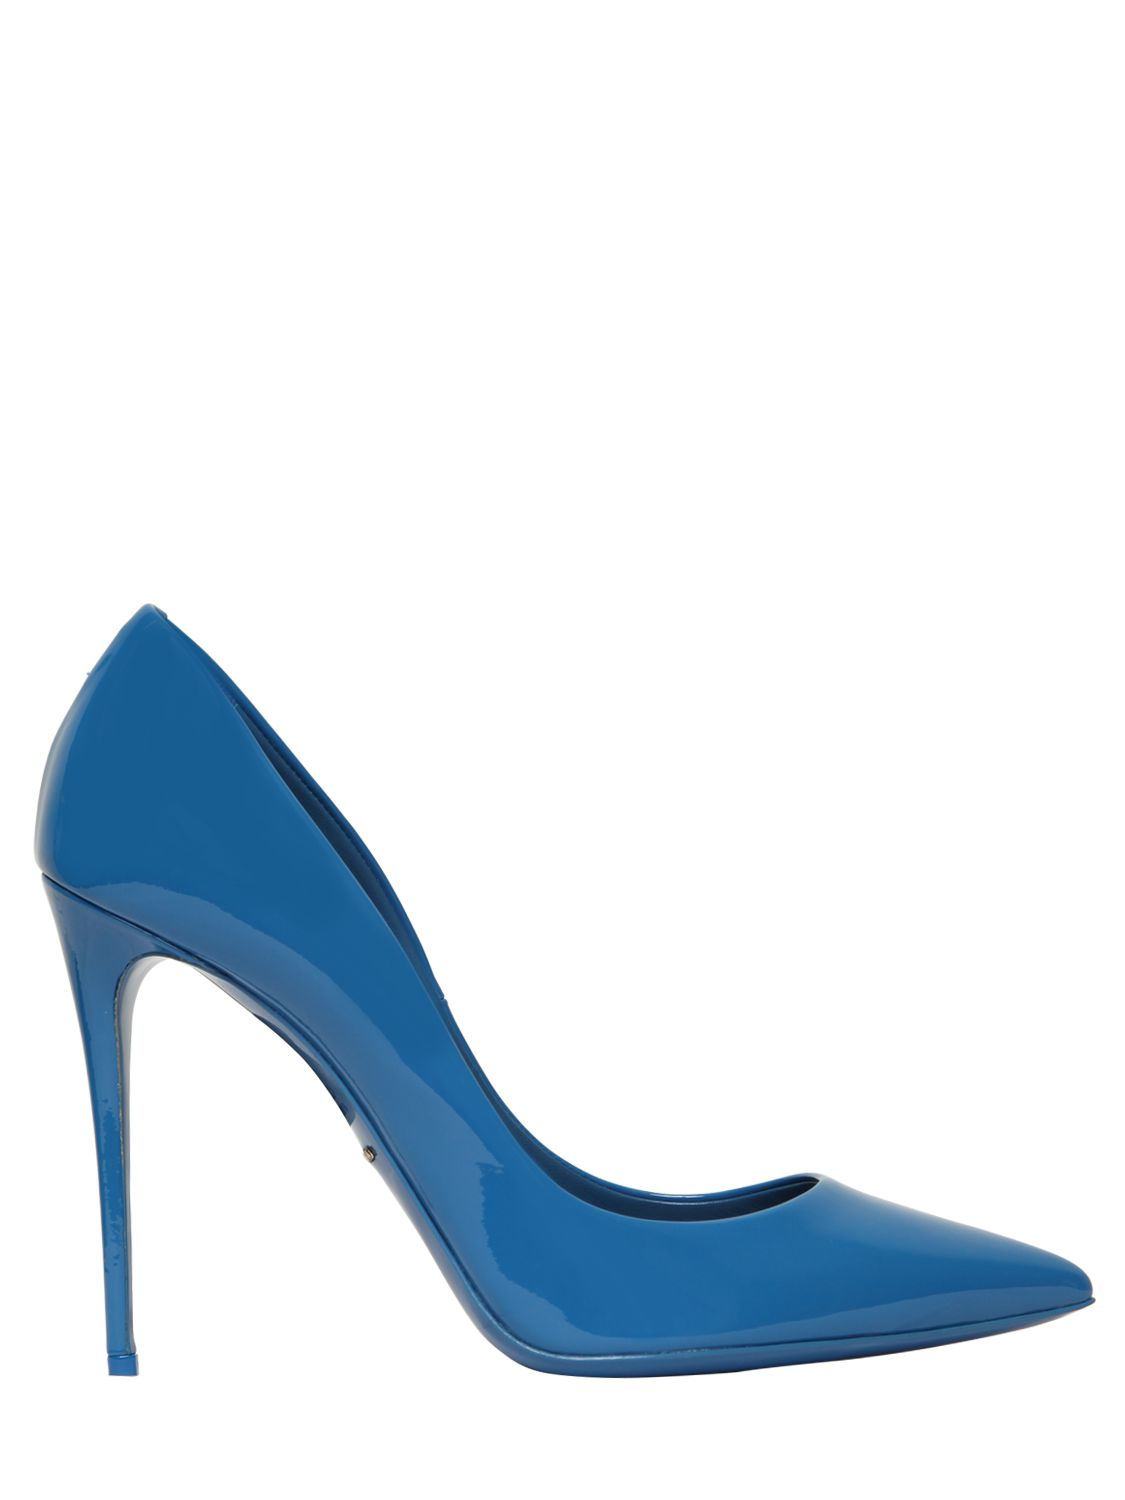 4b48a0ea5db4 Lyst - Dolce   Gabbana 105mm Kate Patent Leather Pumps in Blue